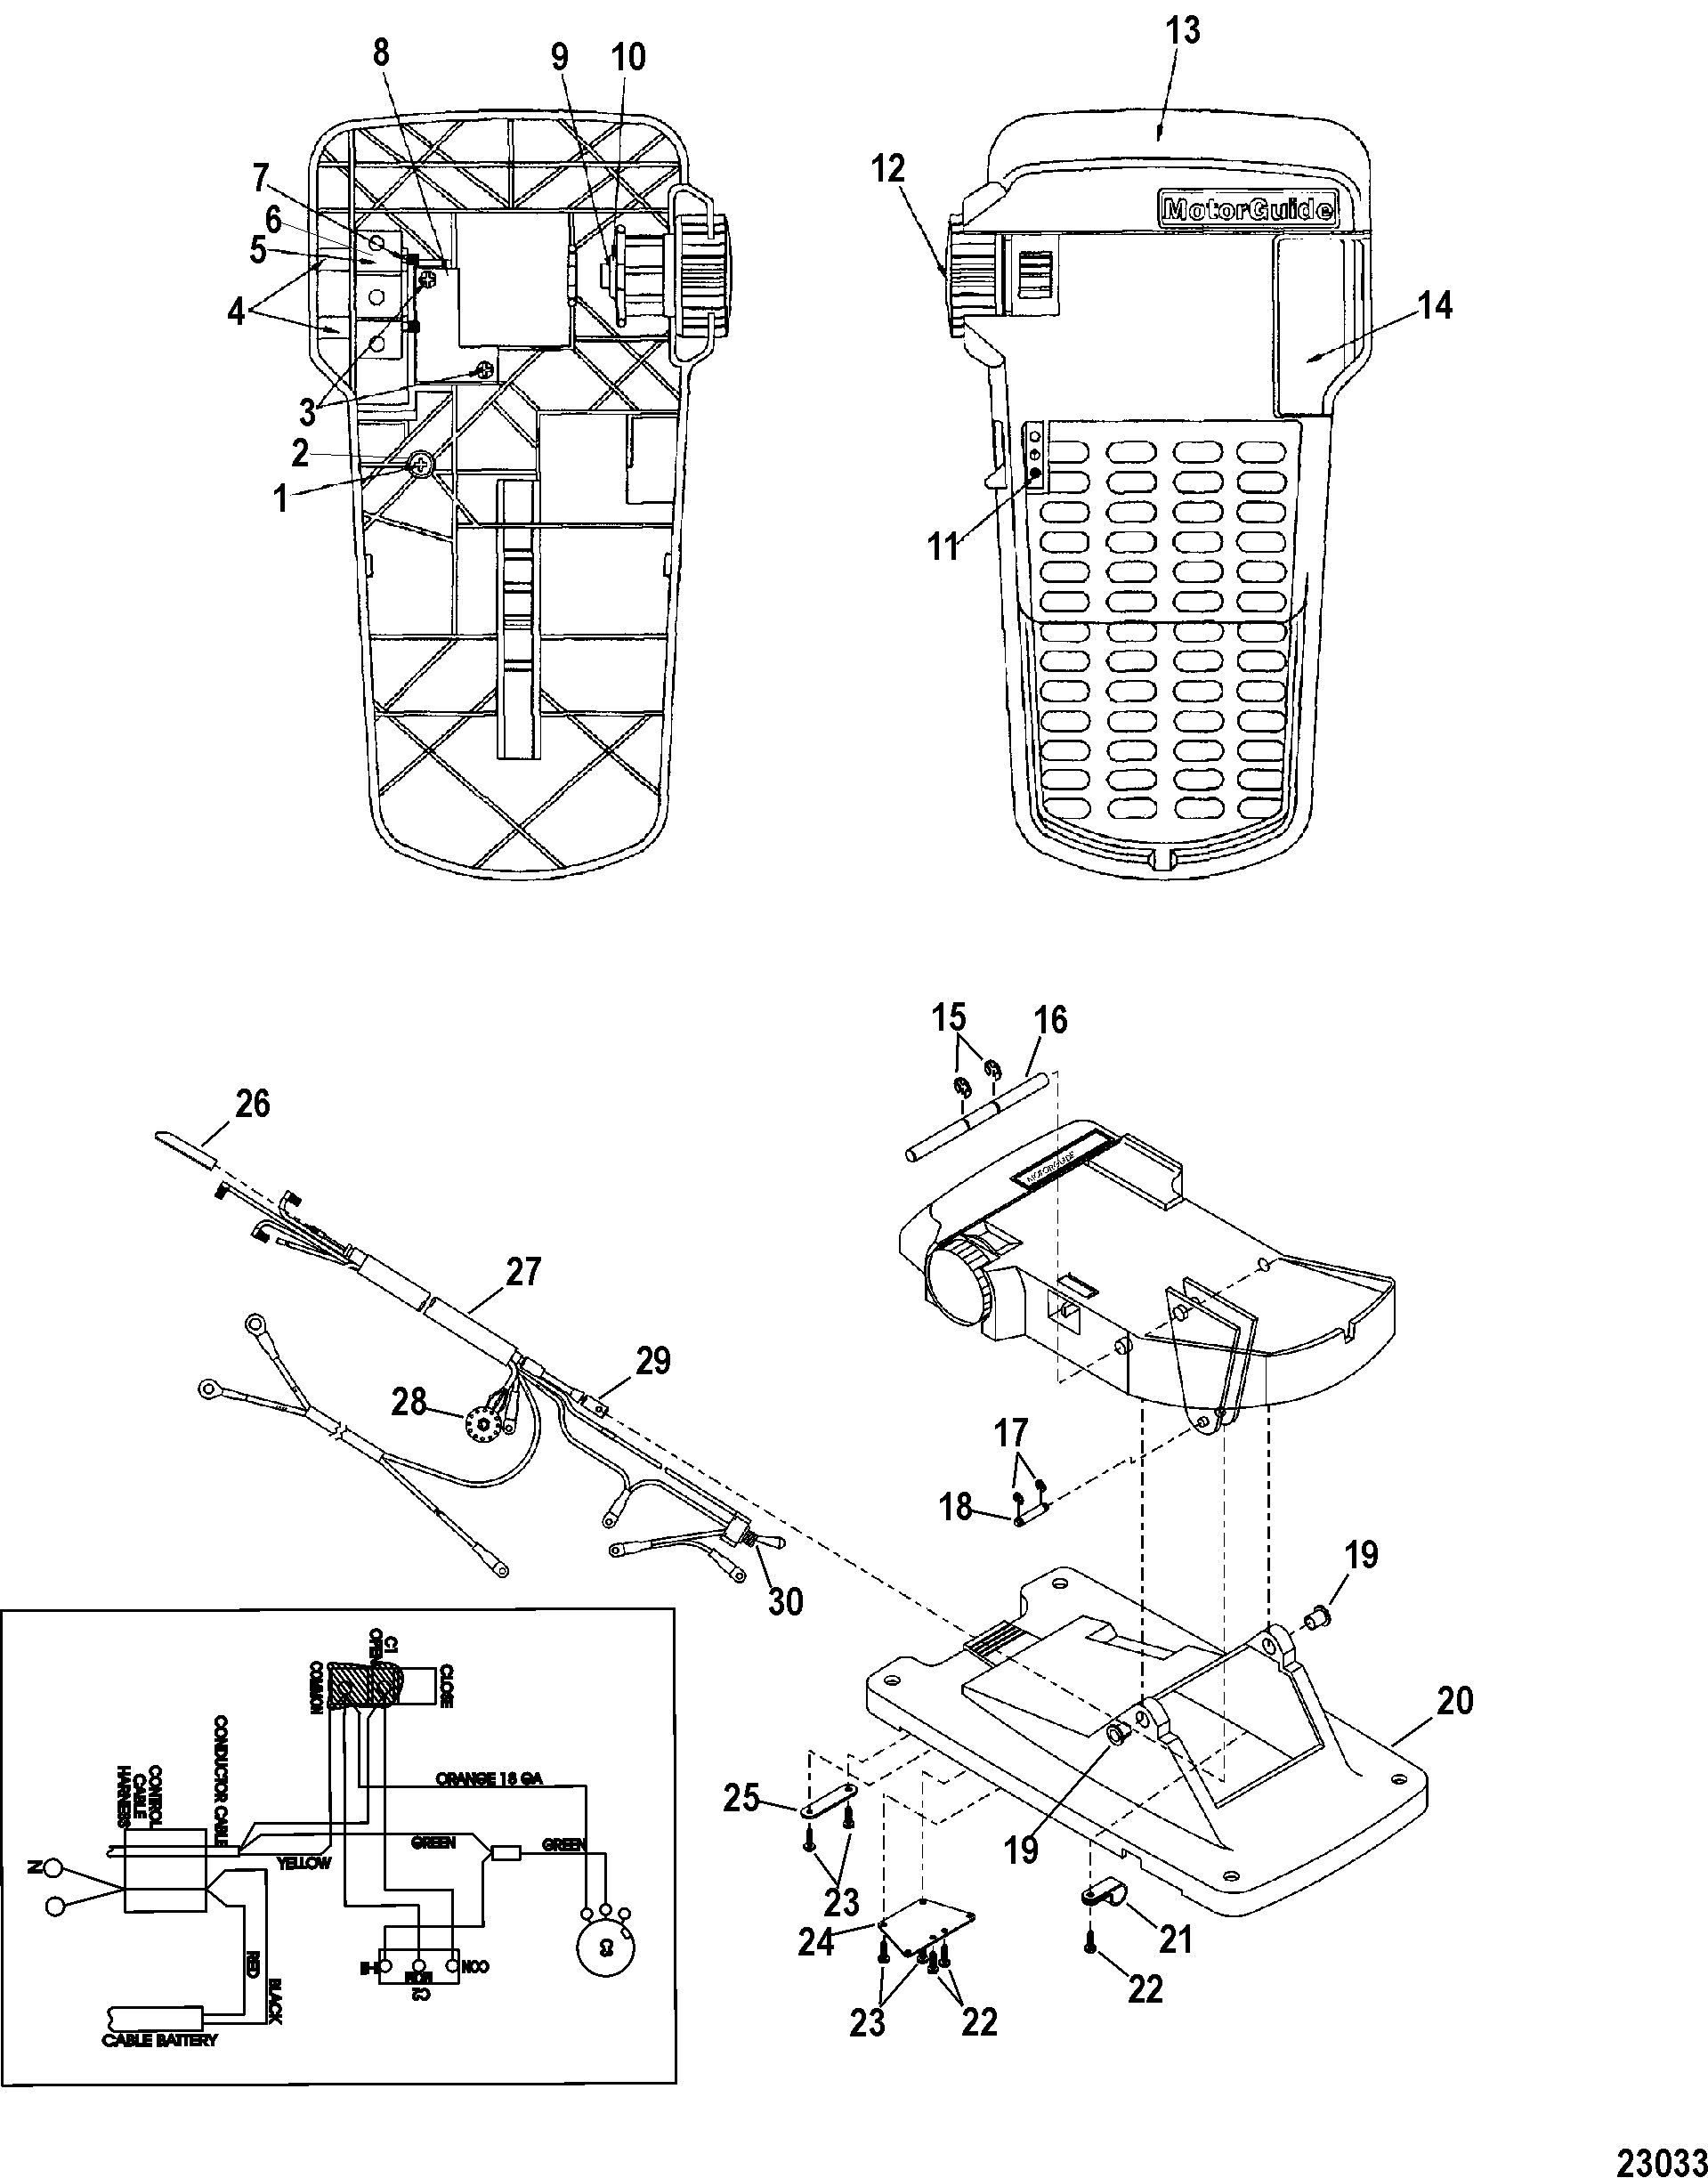 motorguide wireless foot pedal instructions